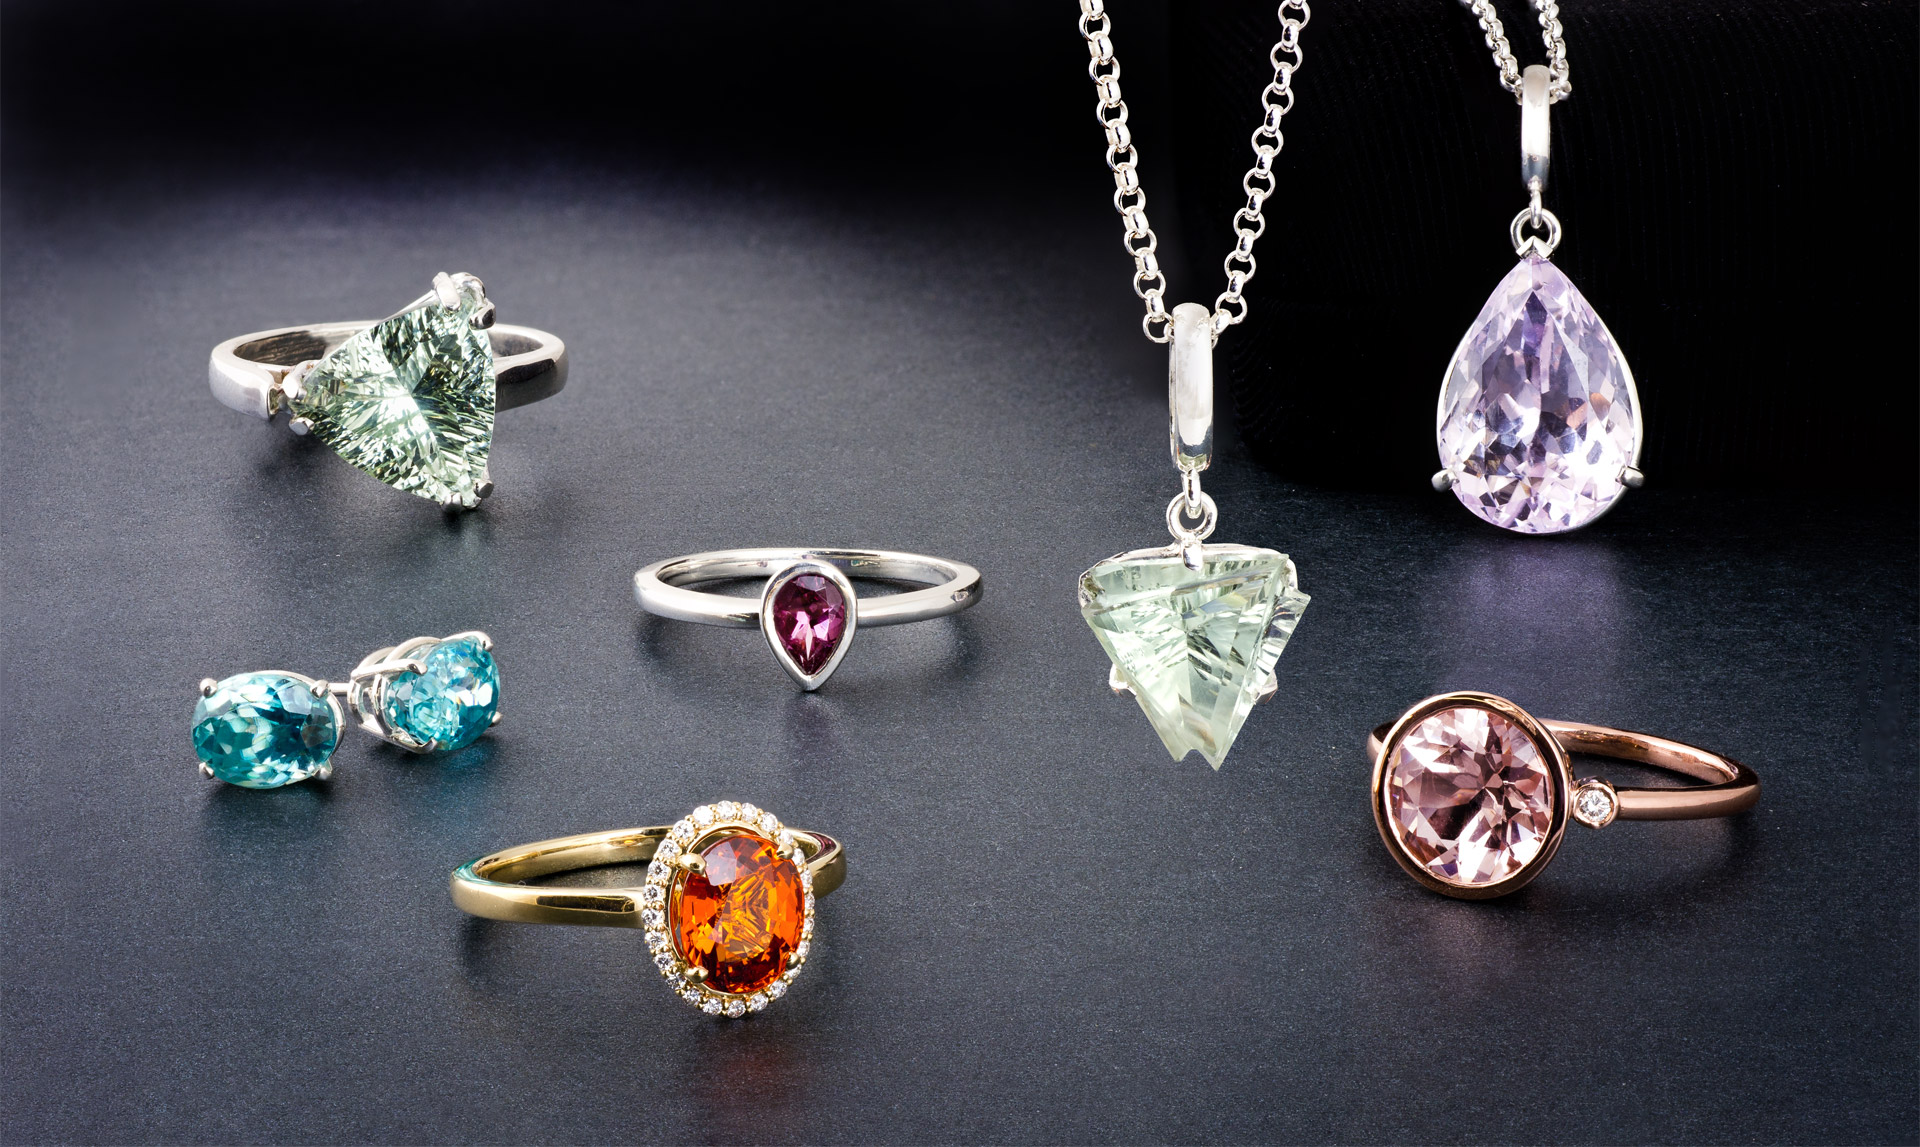 The Rare and Beautiful collection featuring uncommon colored gems